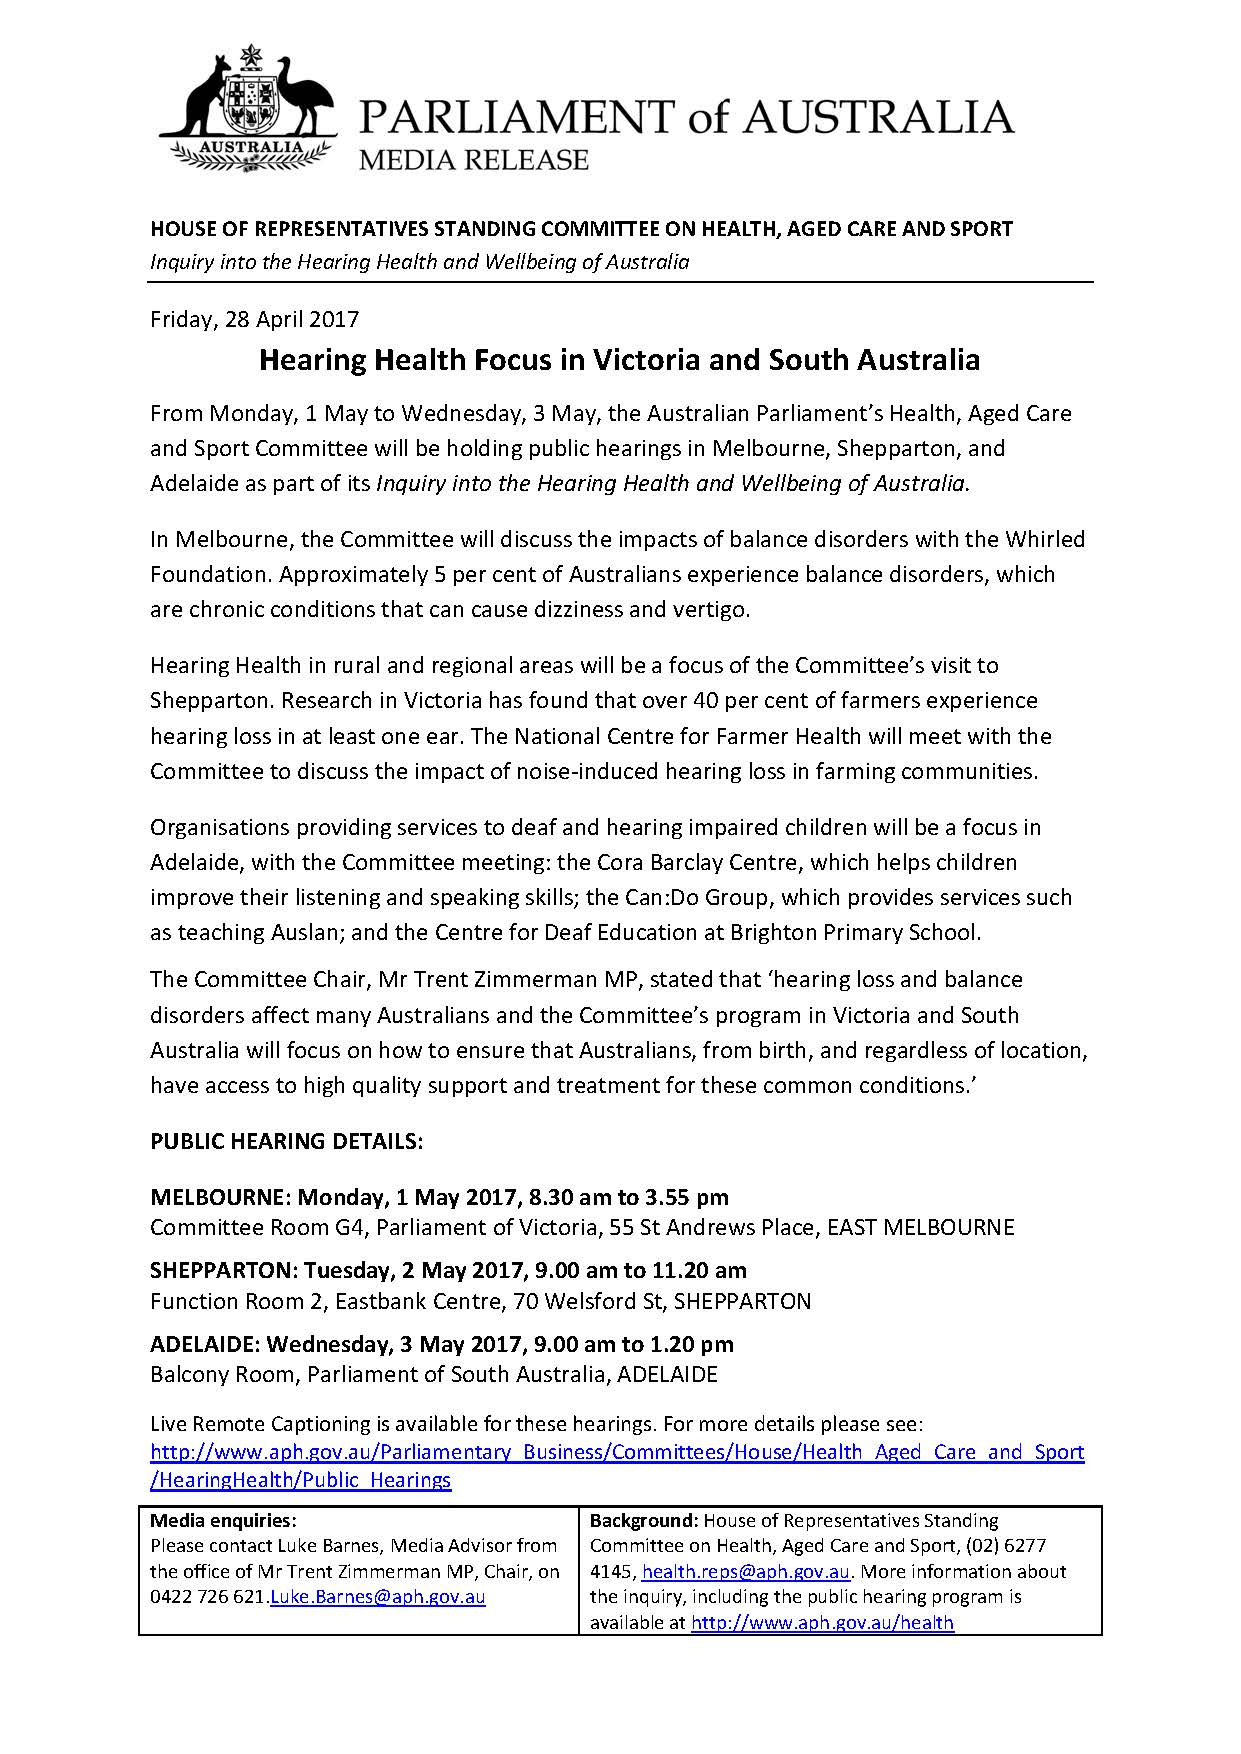 1-3 May - Melbourne Shepparton Adelaide Hearings[1]